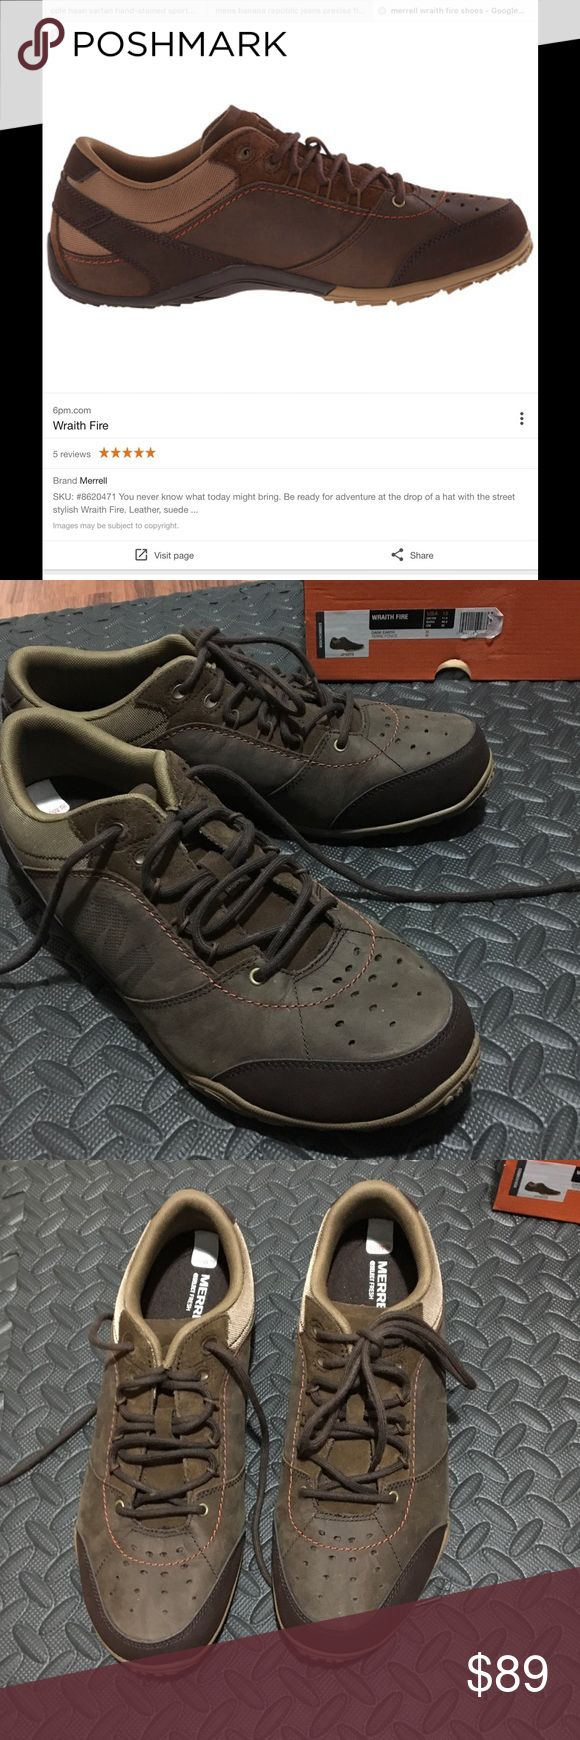 Merrill Wraith Fire Size 12 casual hiking shoes Merrill Wraith Fire Size 12 casual hiking shoes.new in box. Box does not come with original Top. Merrill Shoes Sneakers